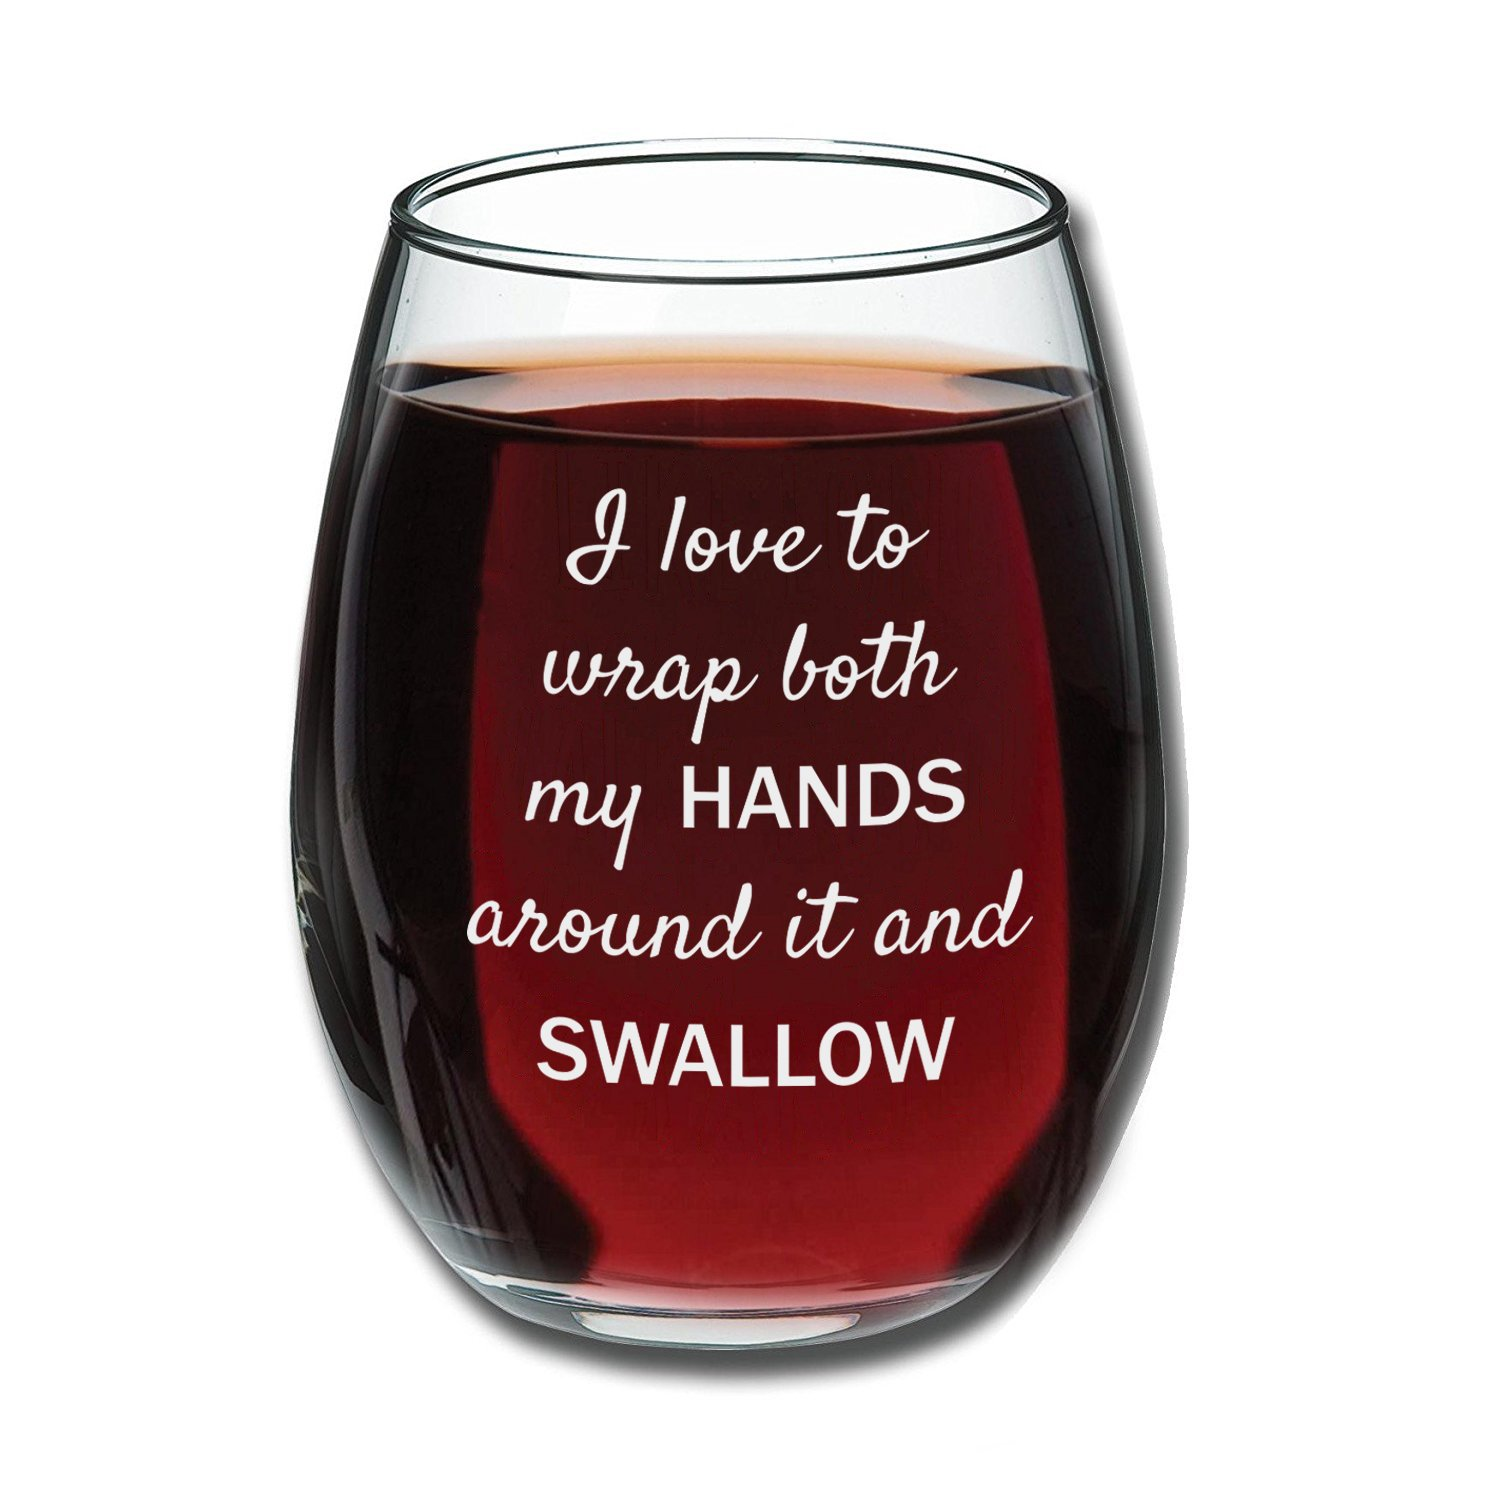 I Love to Wrap Both My Hands Around It and Swallow - Funny Stemless Wine Glass - Gag Gift for Women - Bachelorette Gift - Gift Idea for Her - Evening Mug